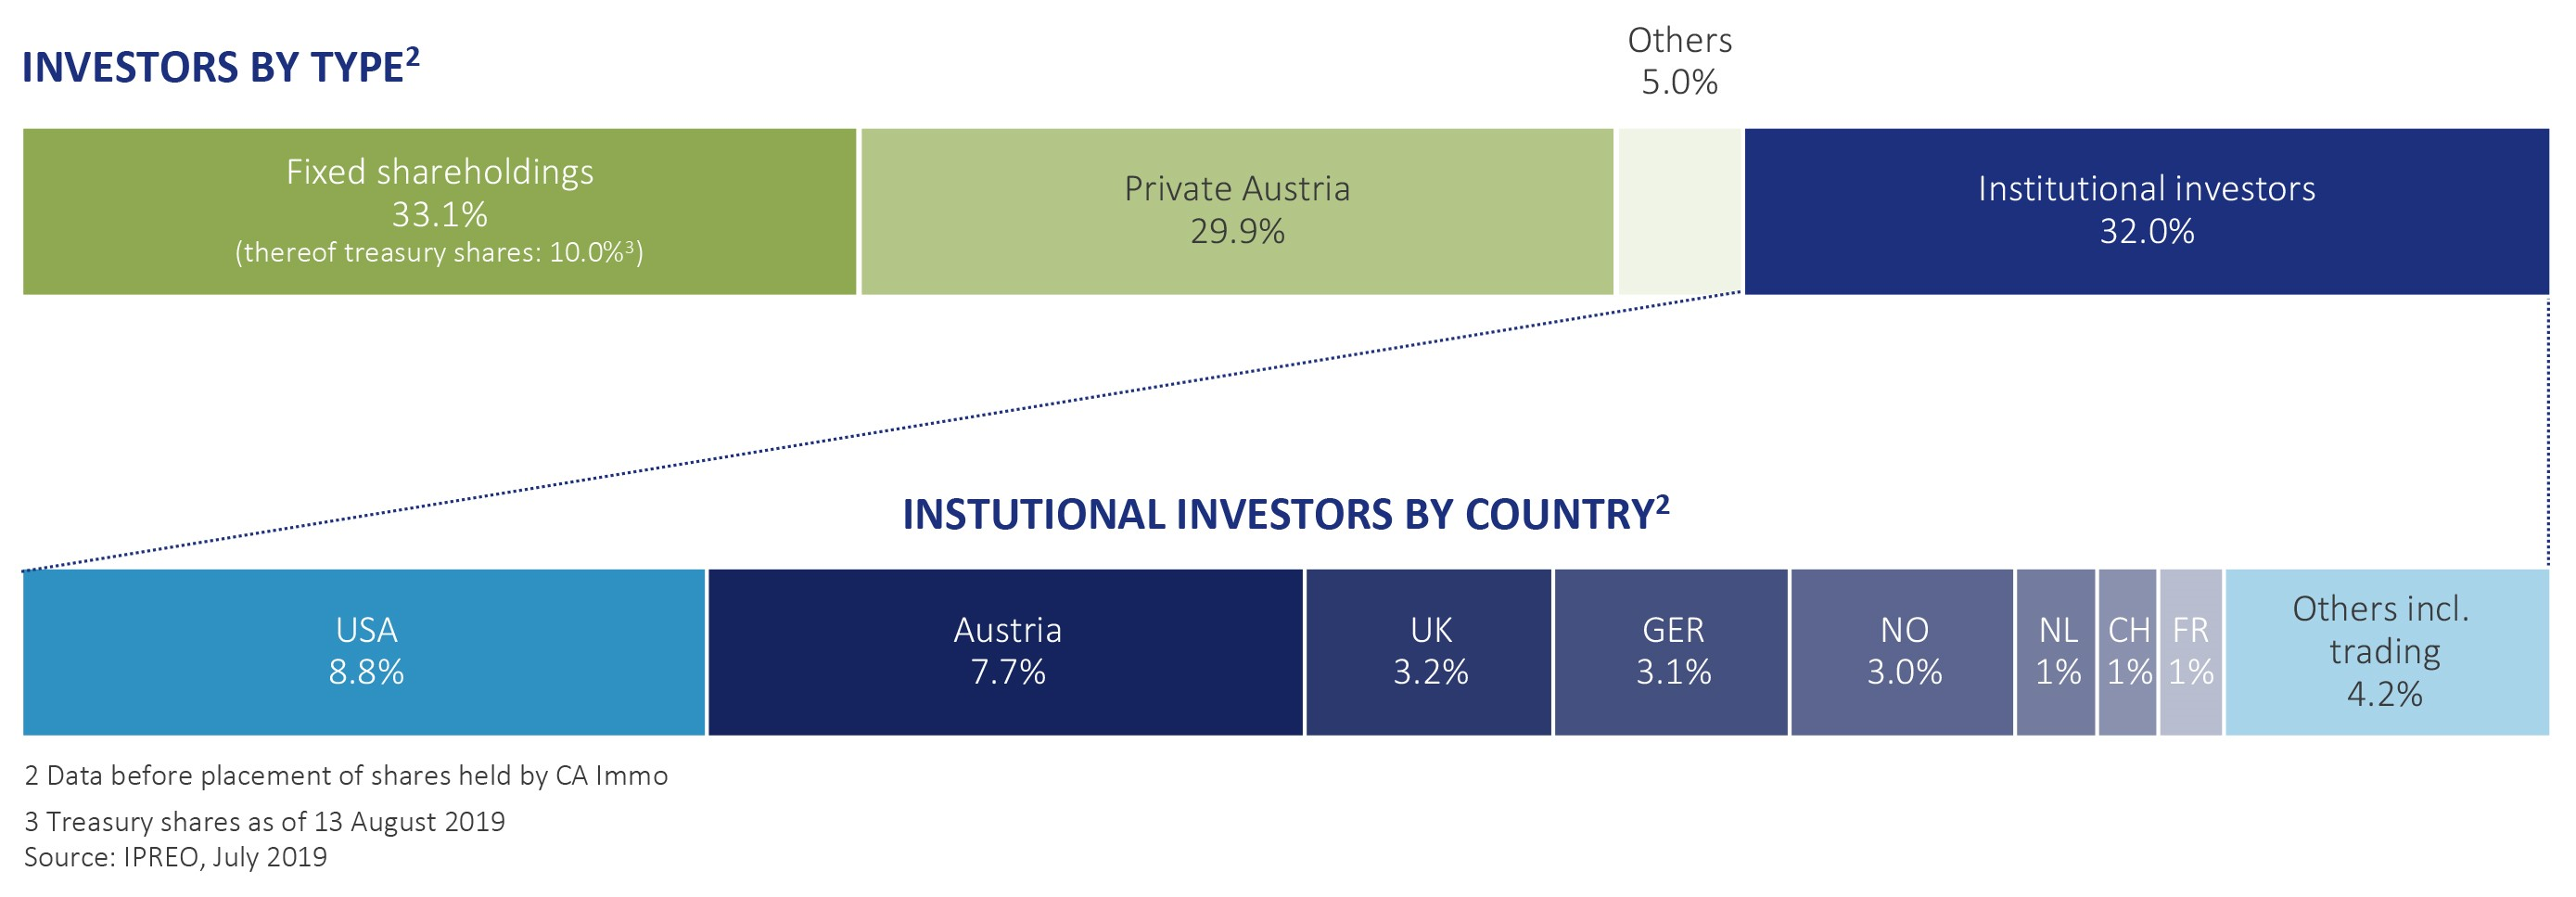 Shareholder Structure - Invsotrs by type